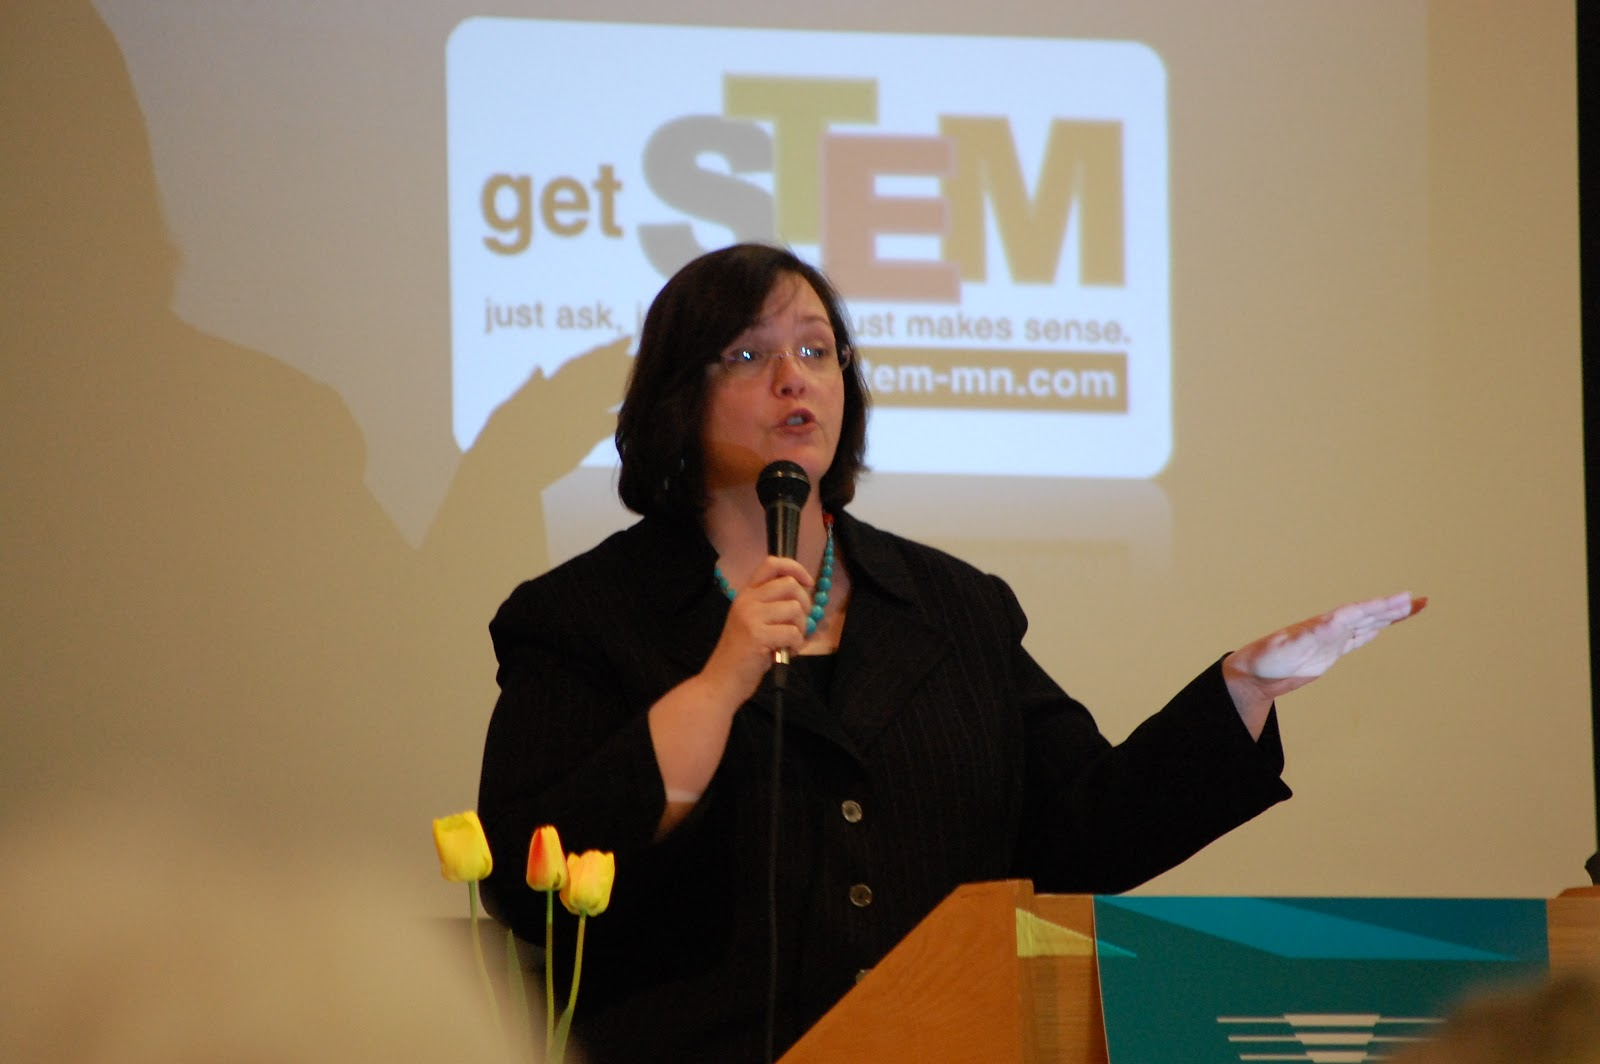 kelliher women The future of stem careers  susan kelliher,  chemours has a women's network, which brings together women around the globe to create mentoring opportunities,.